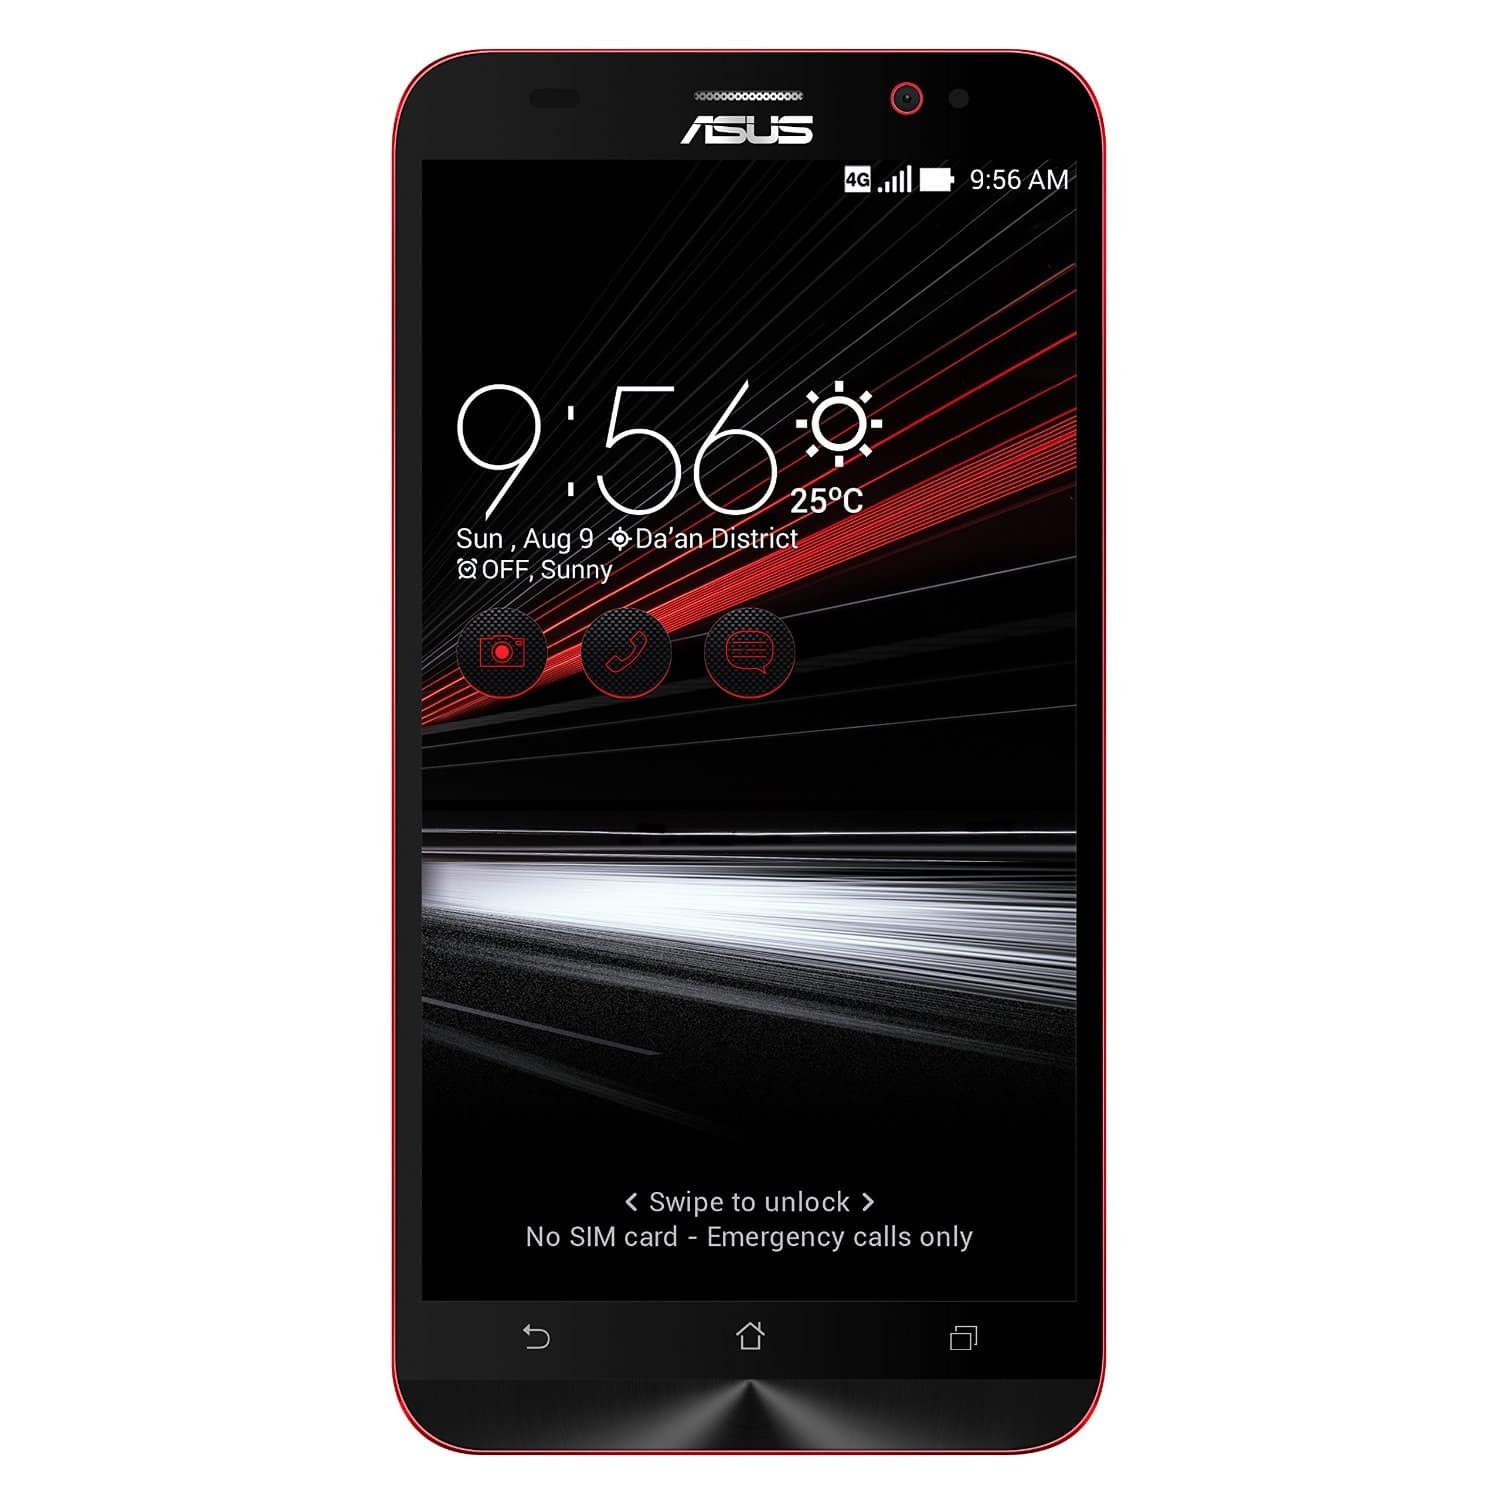 128GB ASUS ZenFone 2 Deluxe Special Edition Dual SIM Unlocked Smartphone $269 + Free Shipping via Amazon